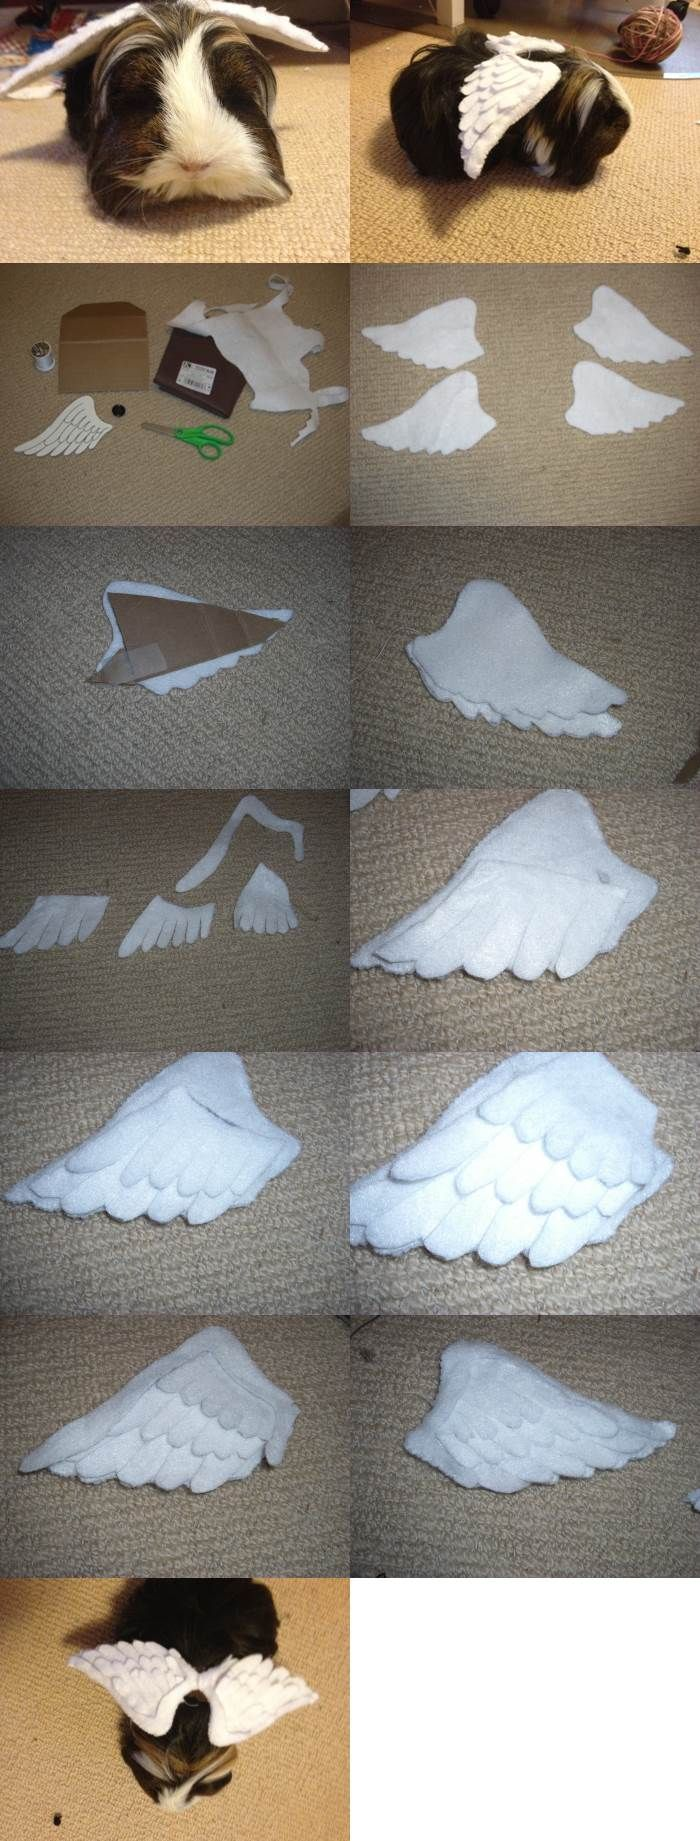 DIY Angel Wings for Guinea Pigs 2